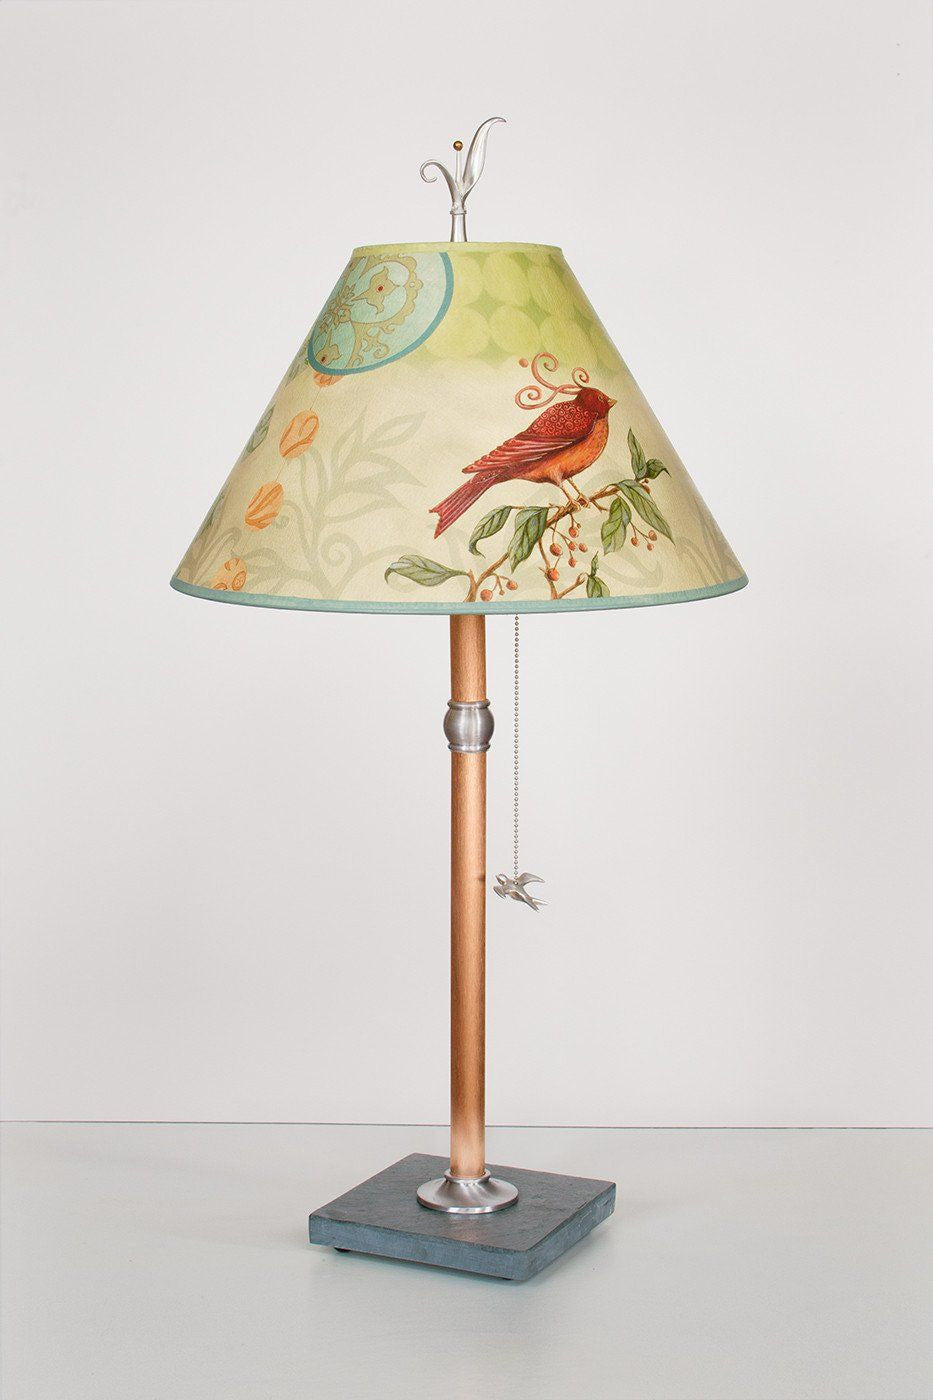 Copper Table Lamp with Medium Conical Shade in Birdscape - Lit